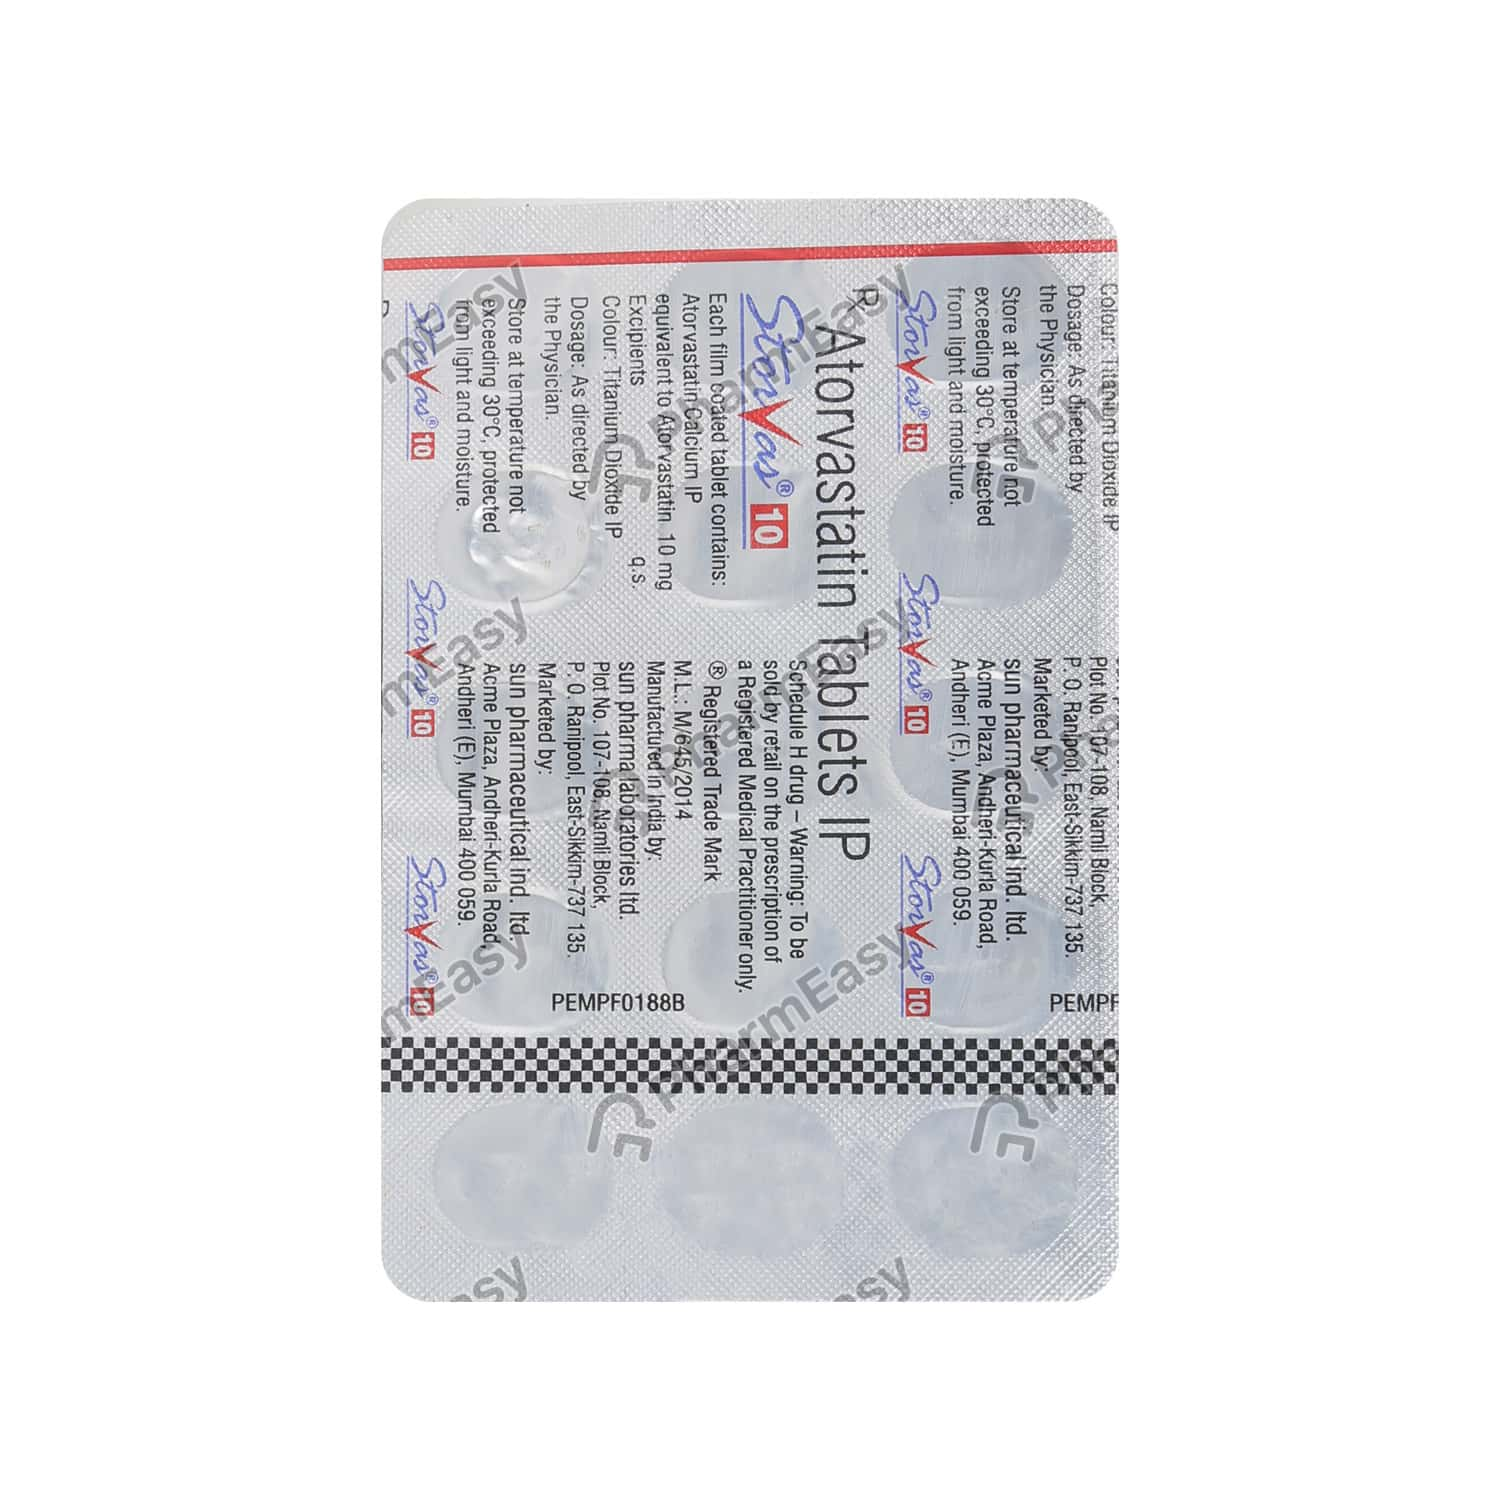 Storvas 10mg Strip Of 15 Tablets